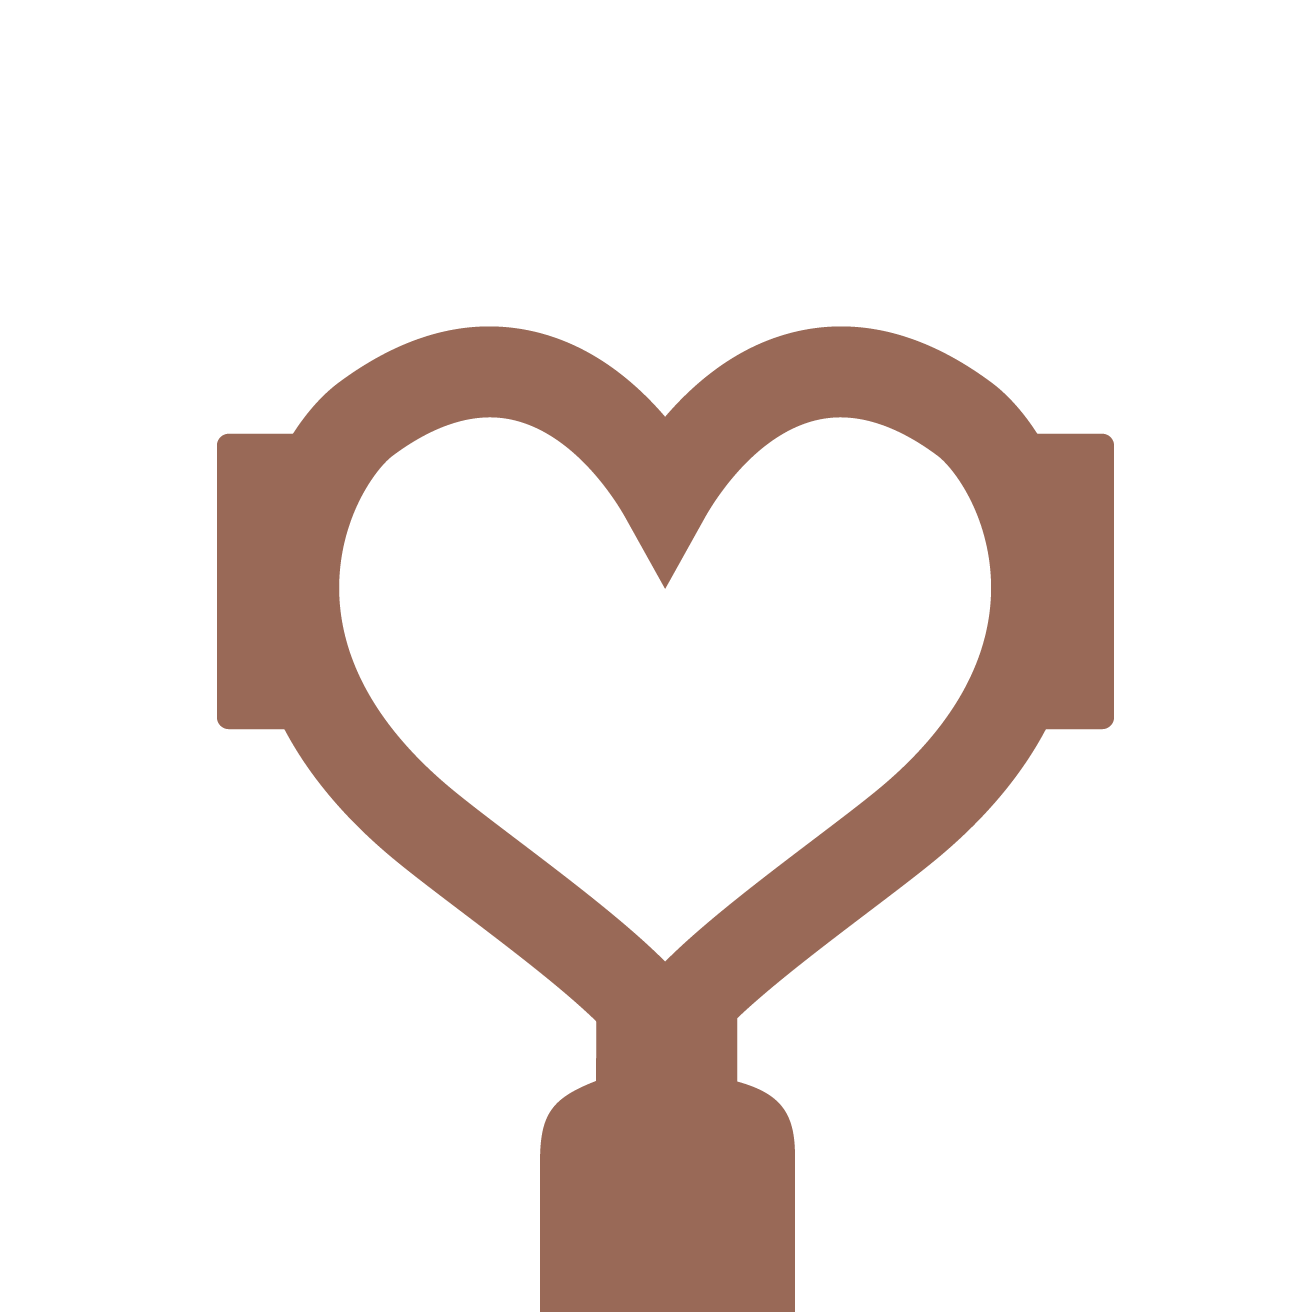 Moccamaster Basket Filters x 100 for CDT Grande